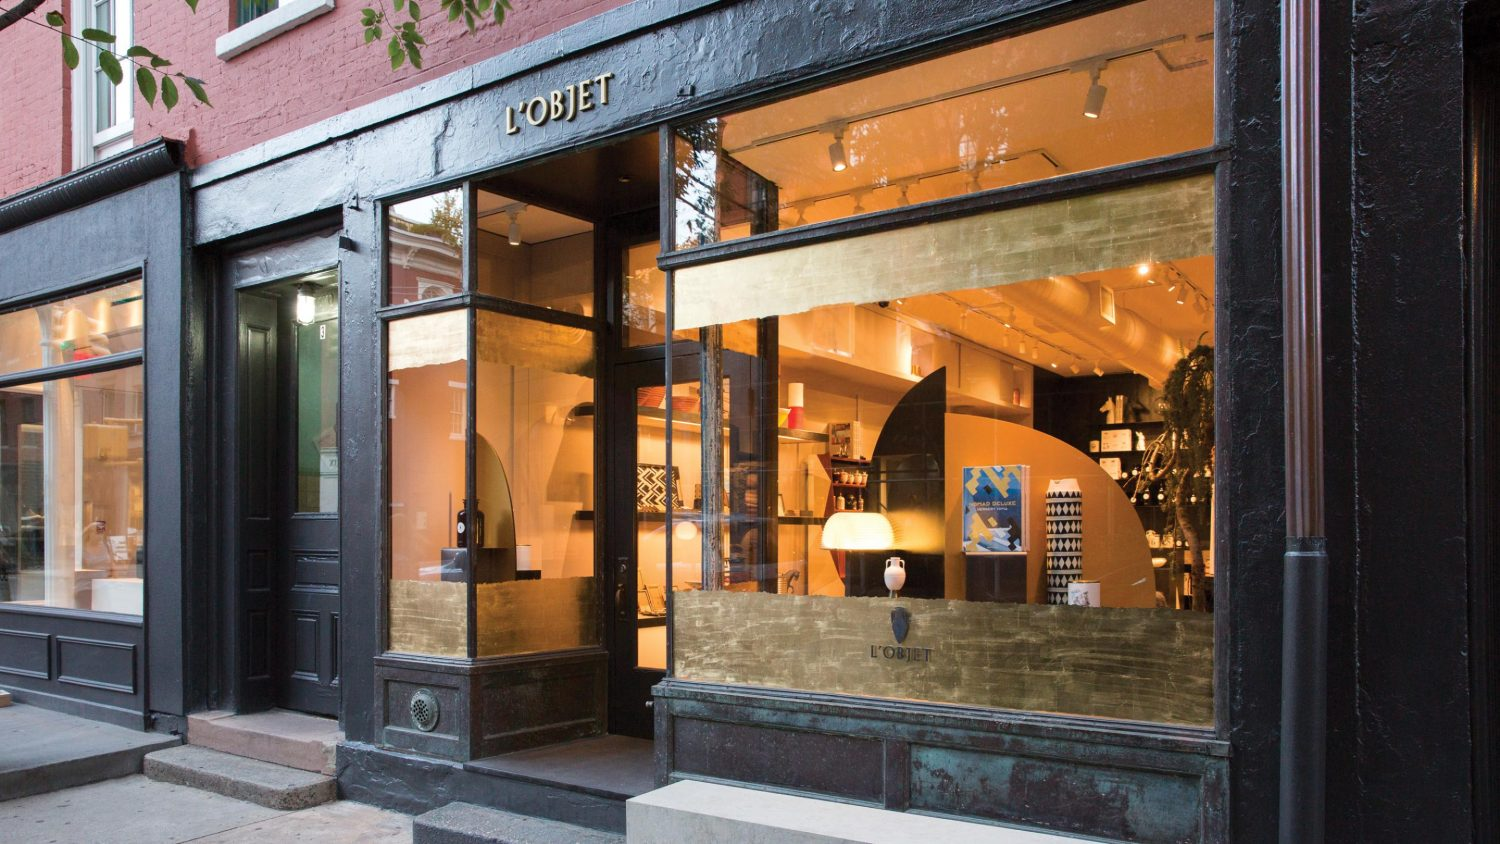 l'objet store in new york city guide new york city guide NEW YORK CITY GUIDE objet store